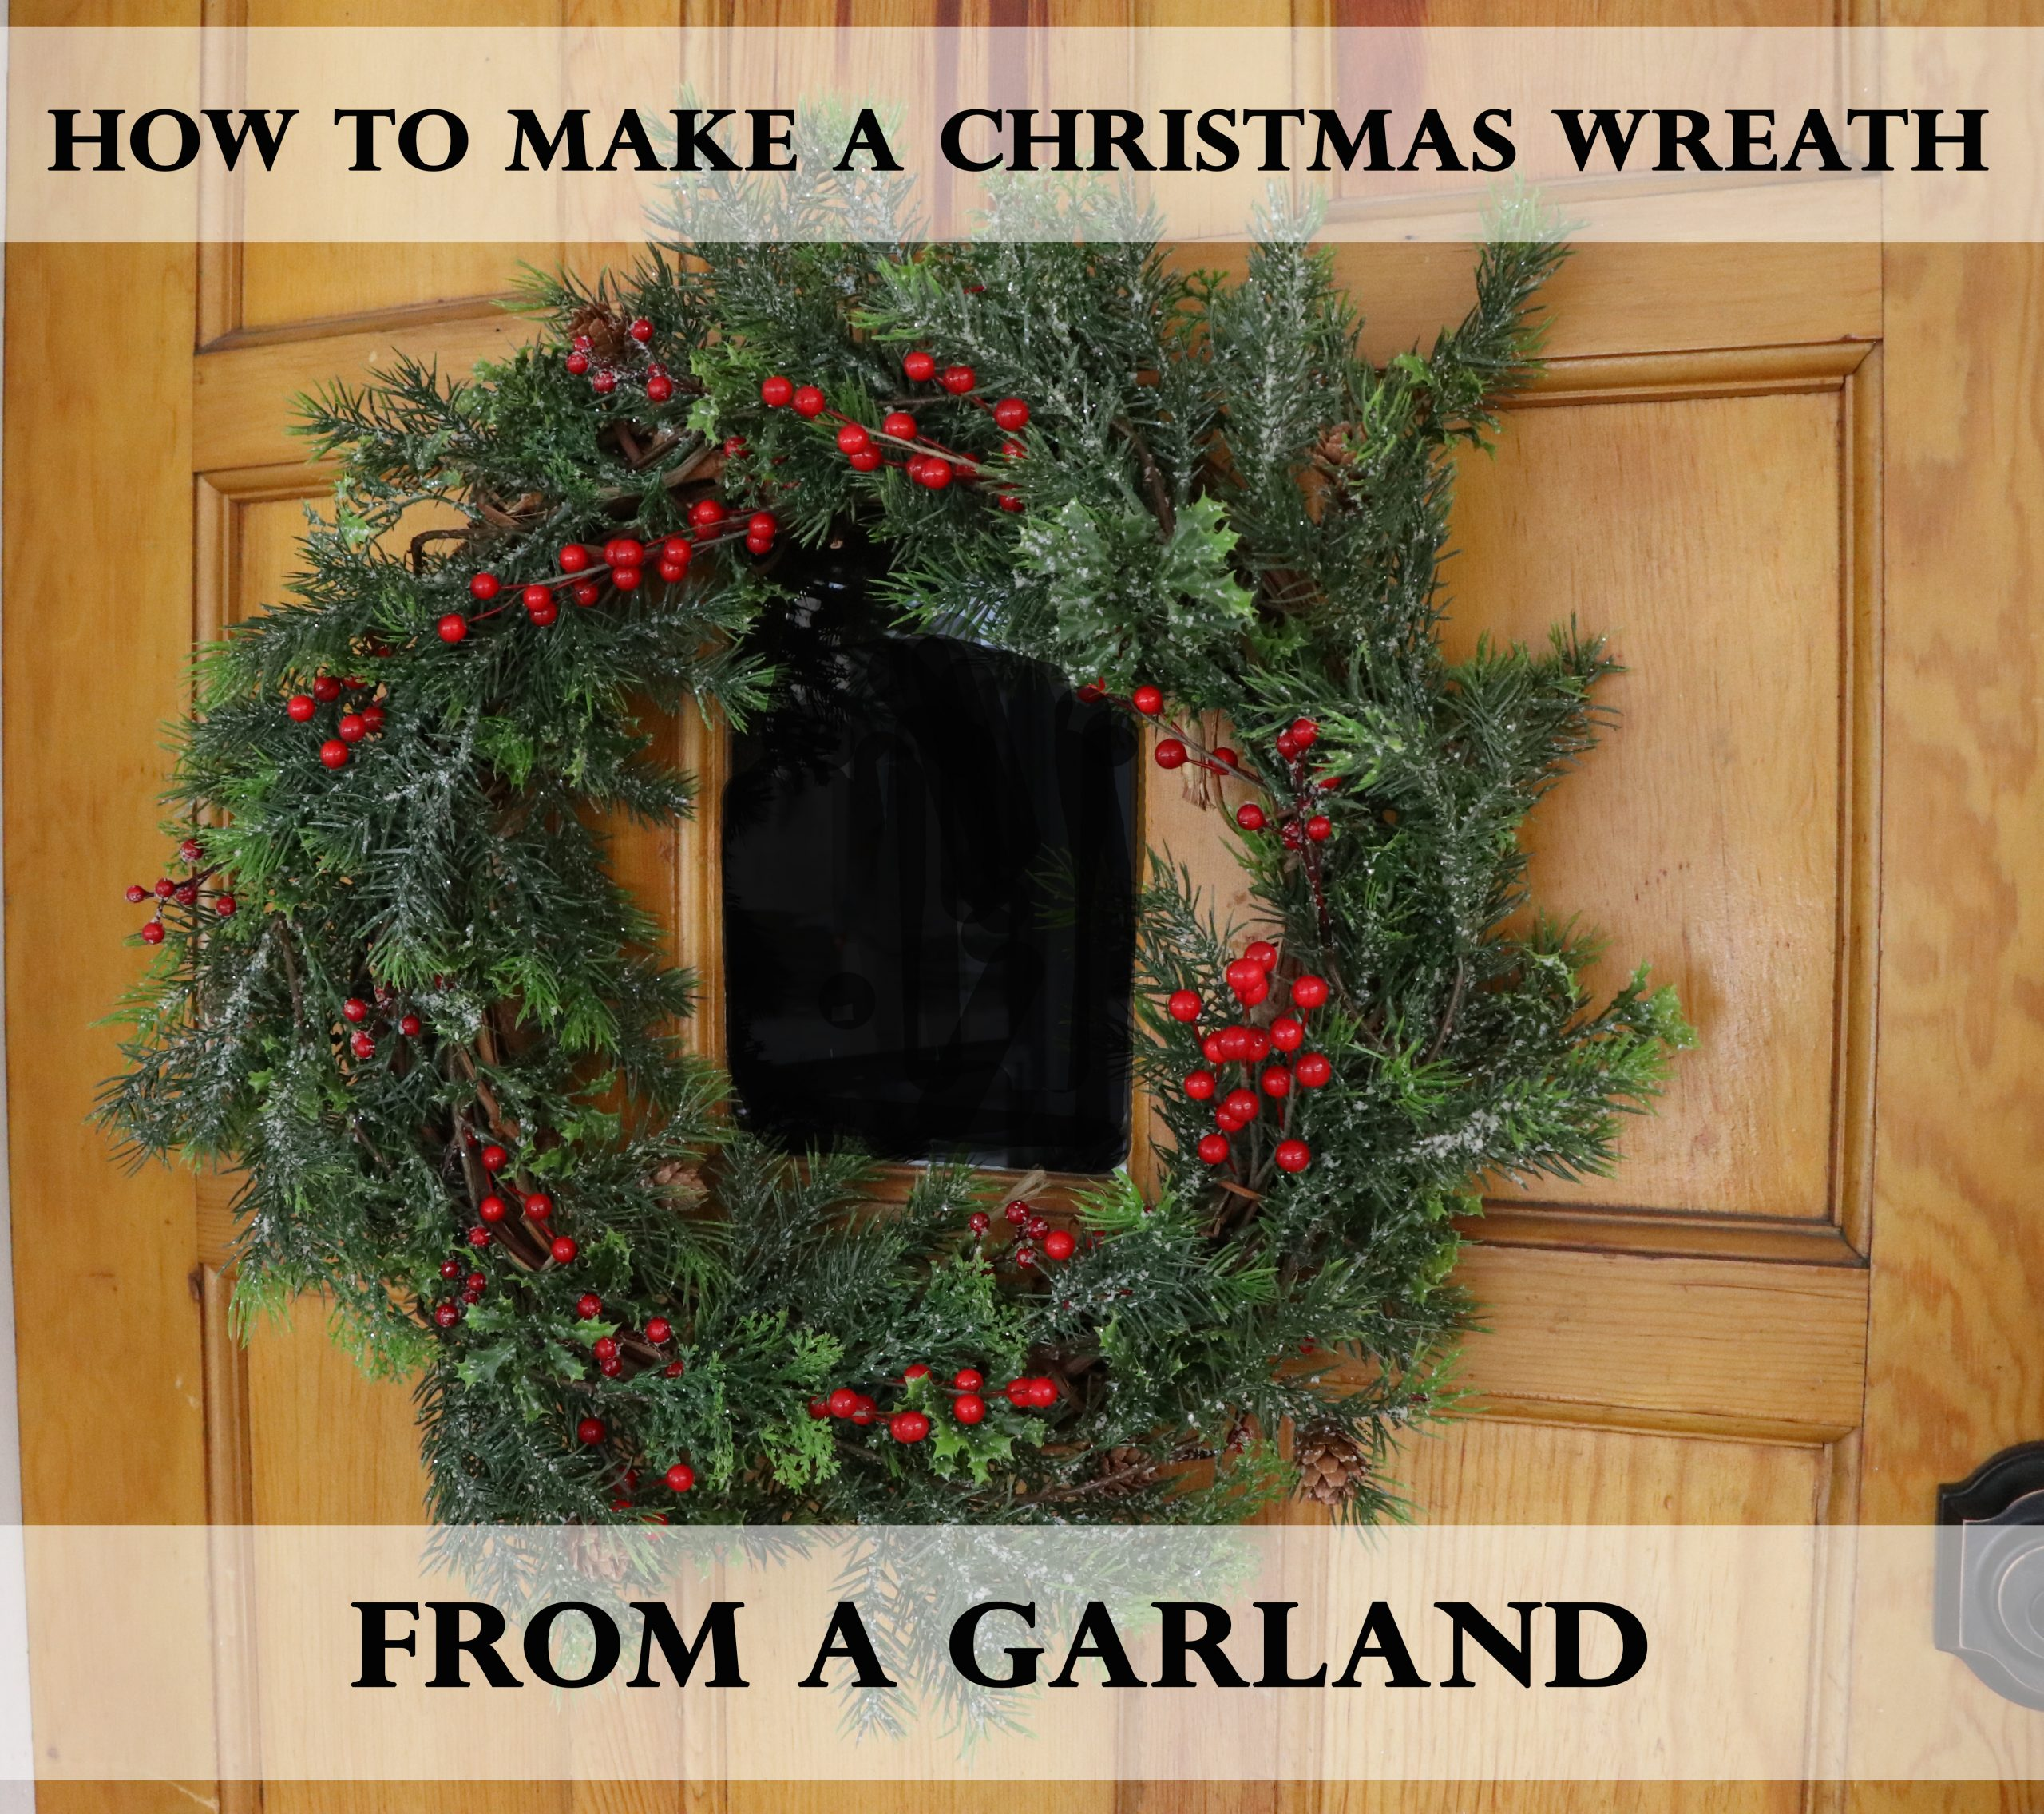 How to Make a Christmas Wreath from Garland